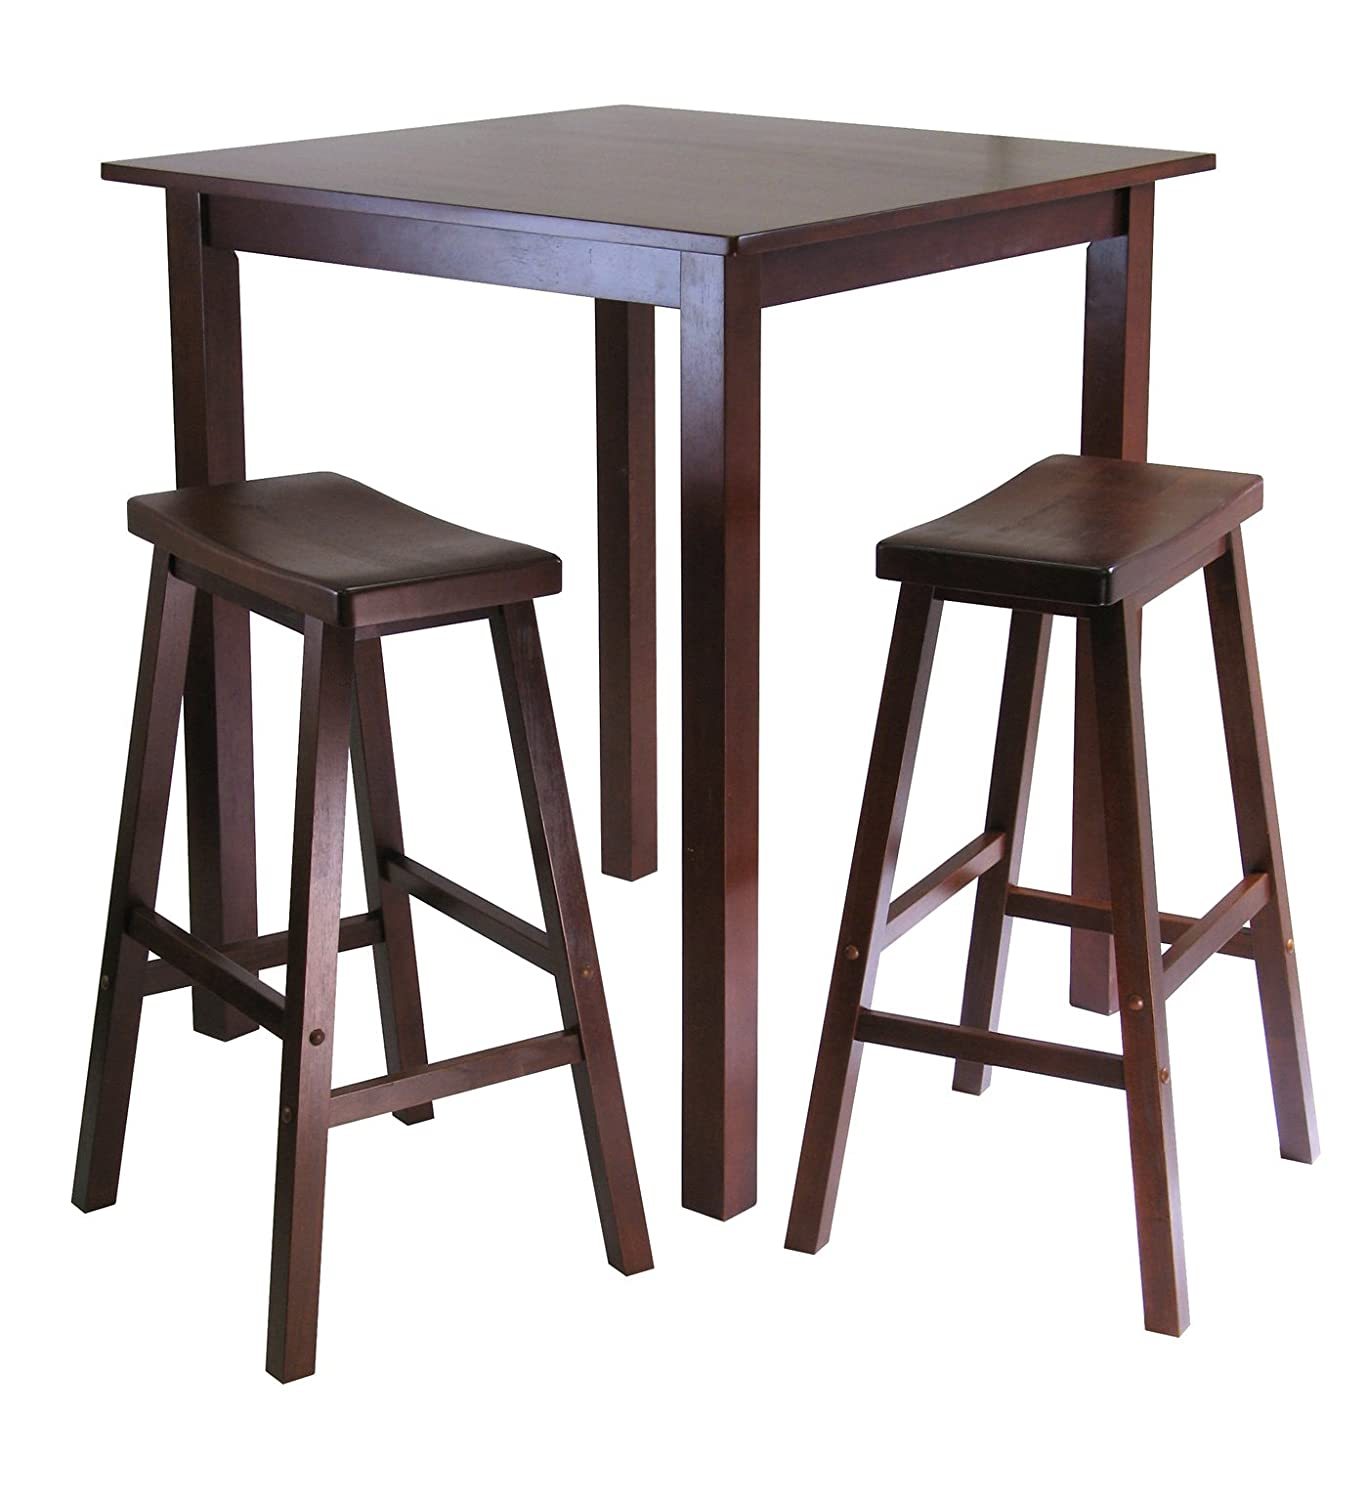 Small kitchen table sets for Small tall kitchen table